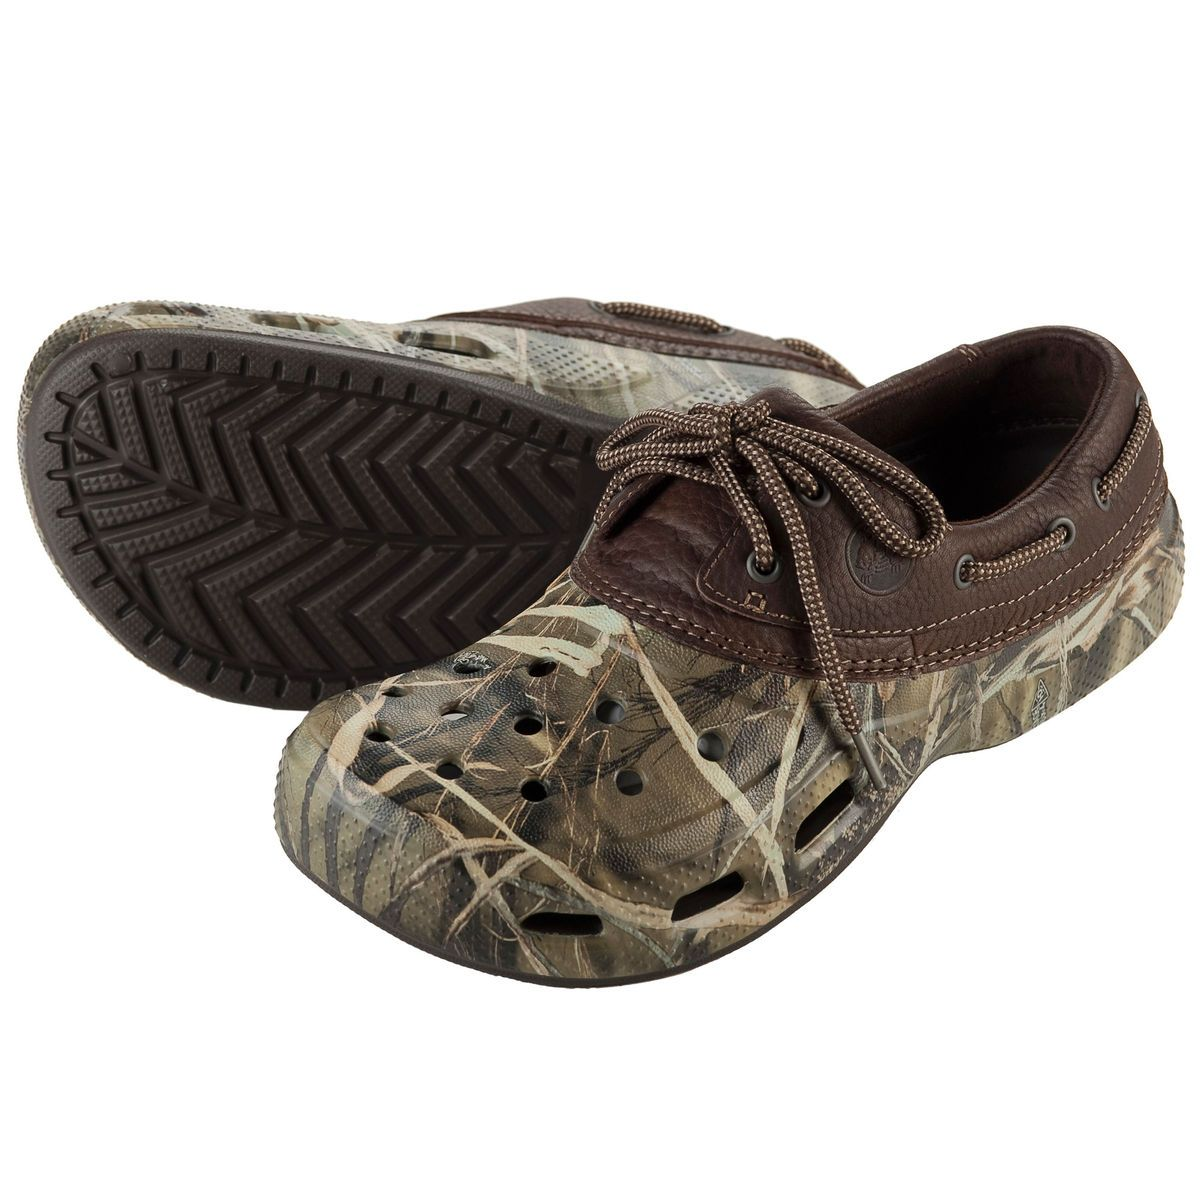 3d32cf52db442d Crocs Mens Islander Sport Realtree Camo Shoe-702036 - Gander Mountain